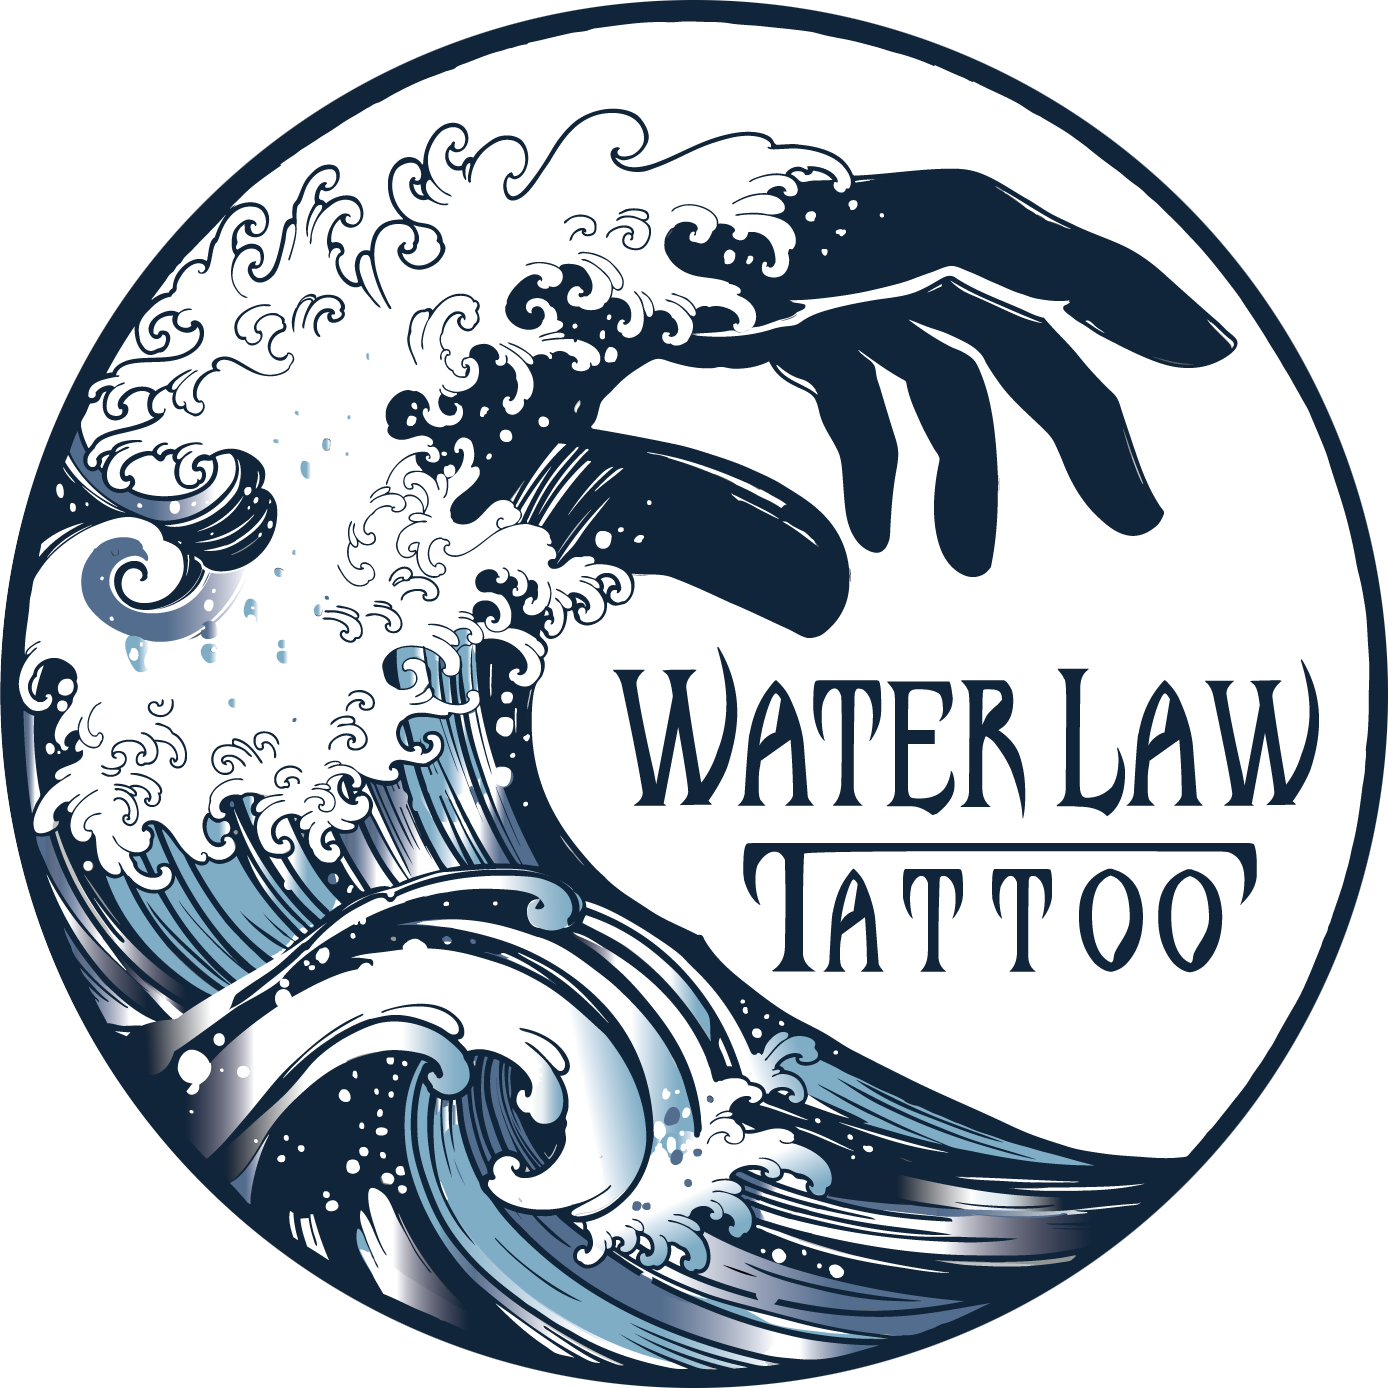 WATER LAW